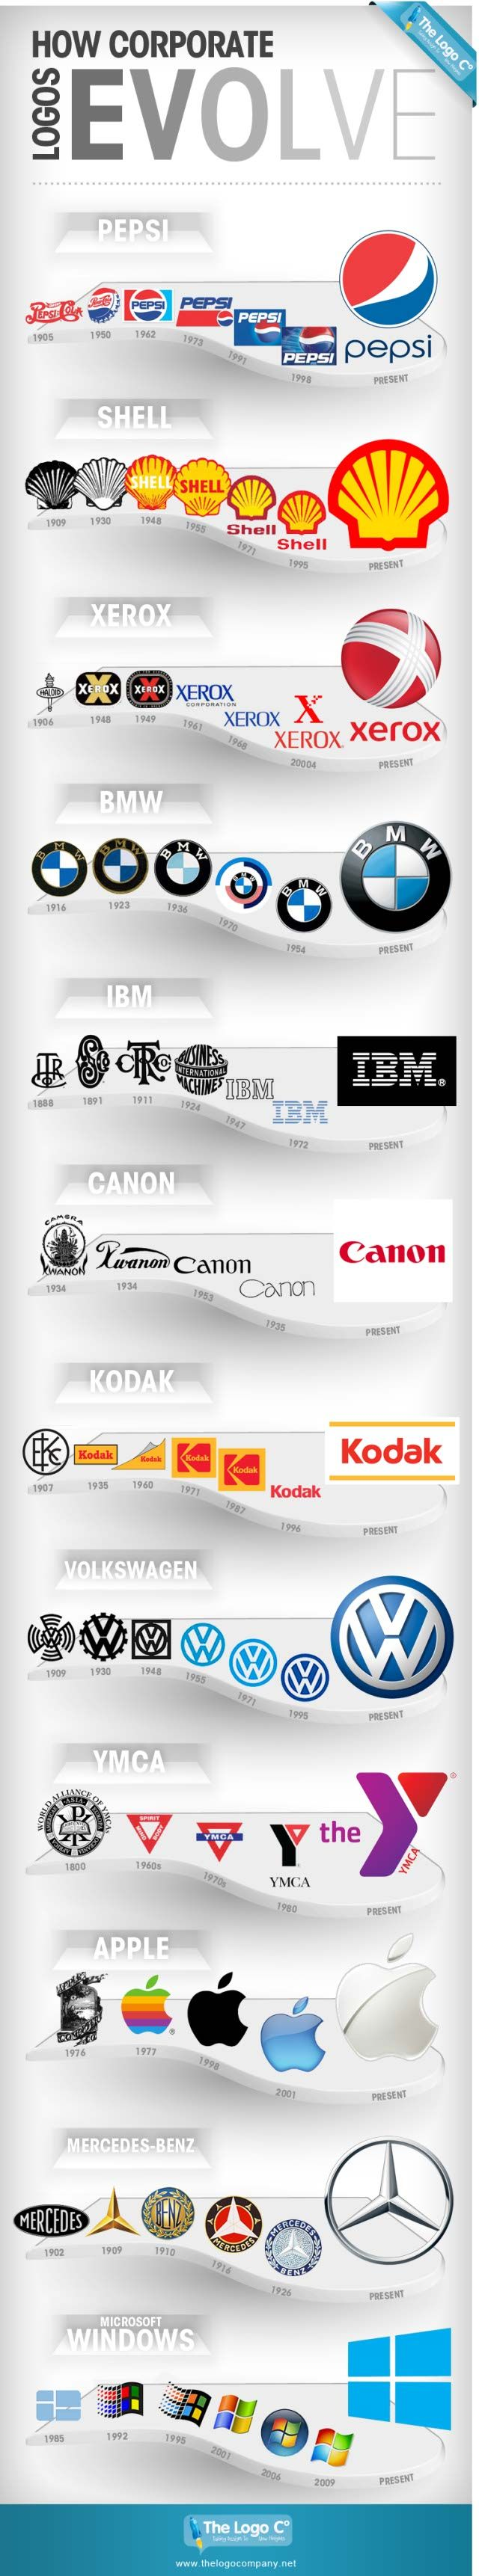 #INFOgraphic > Brand Logo Evolution: Logos communicate a brands or corporations identity and should reflect their evolution over time. See some striking examples of either smooth or sharp logo transitions for some of the most popular brands worldwide including Pepsi, Shell, Mercedes, Apple, Microsoft and Kodak.   > http://infographicsmania.com/brand-logo-evolution/